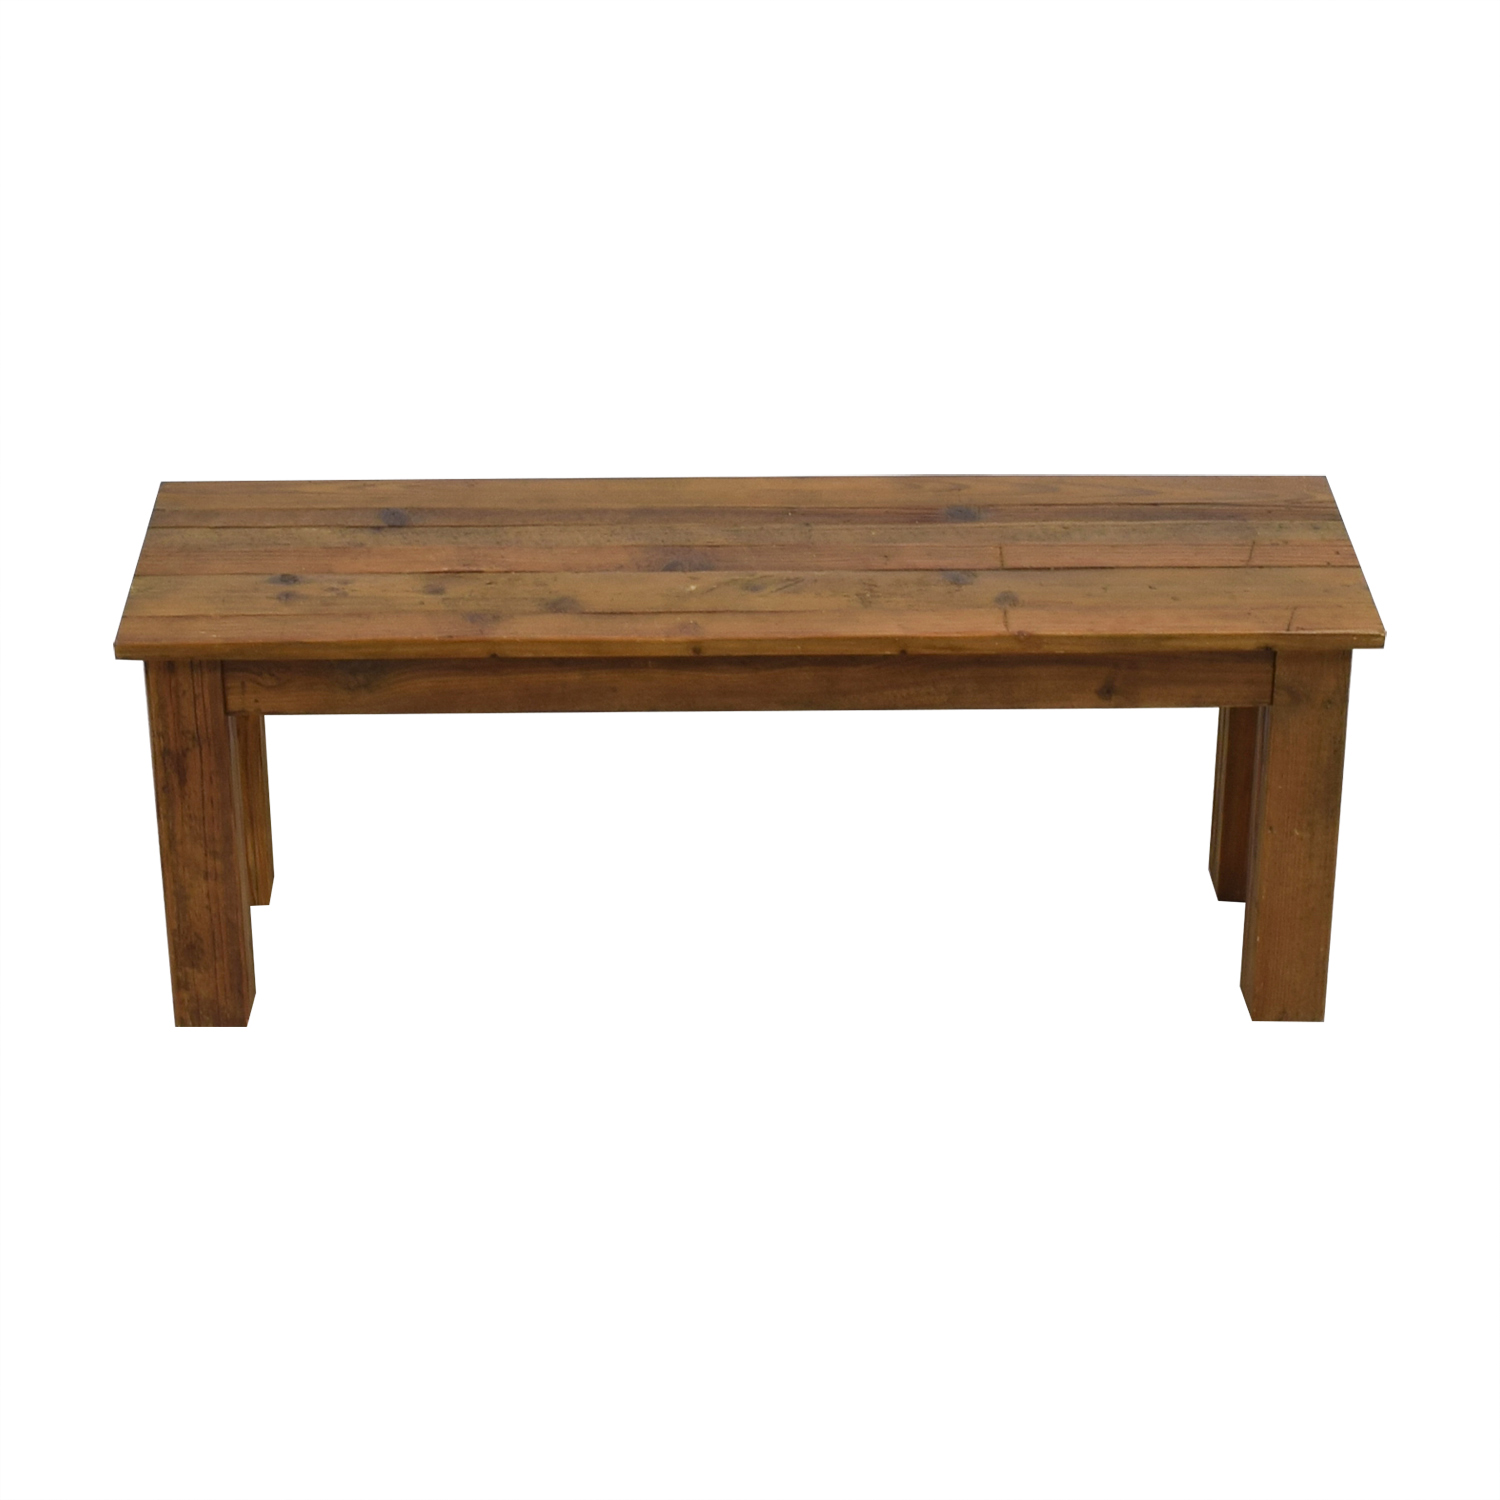 Amazing 63 Off West Elm West Elm Reclaimed Wood Bench Chairs Cjindustries Chair Design For Home Cjindustriesco